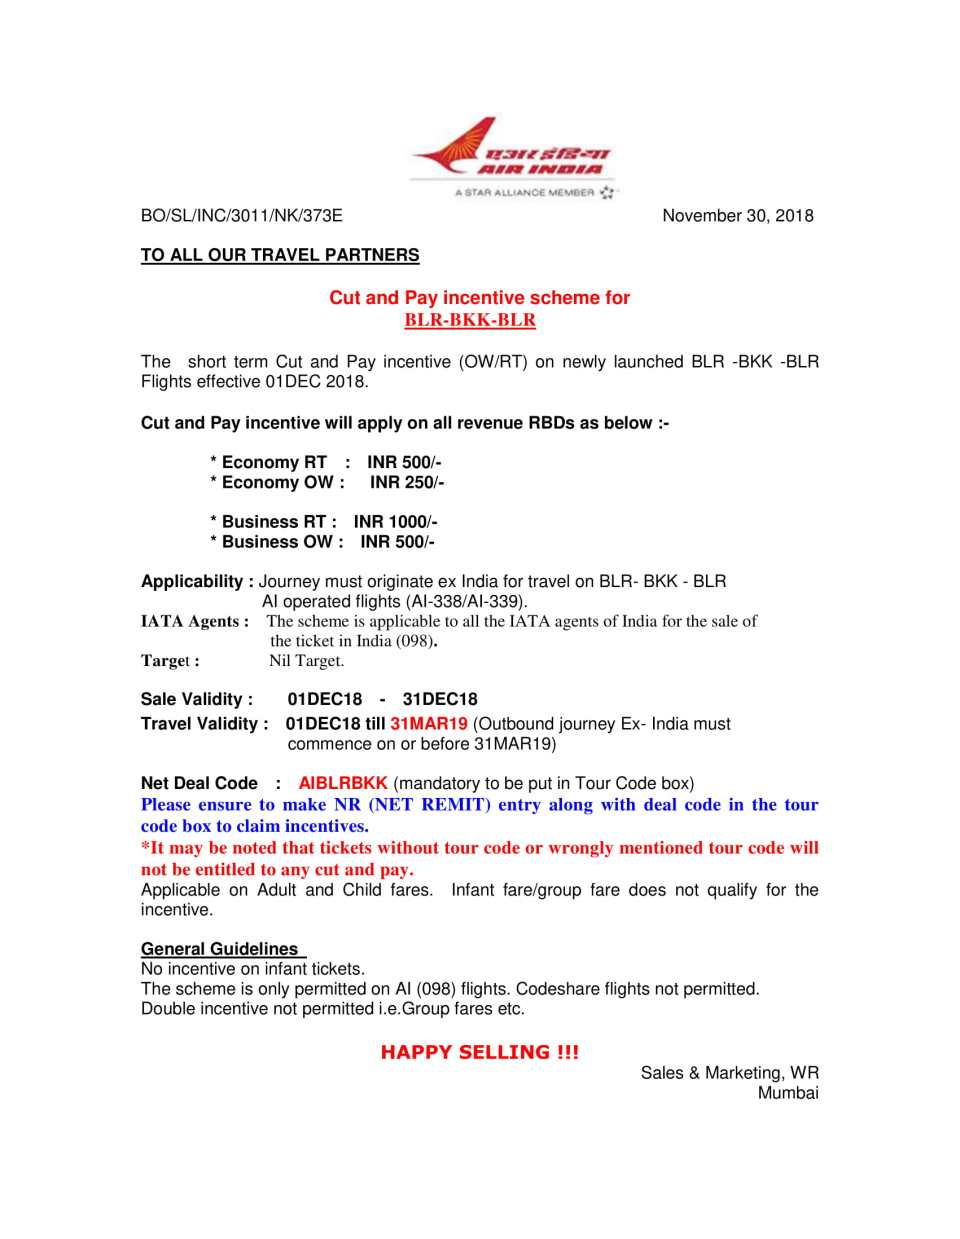 Cut & Pay Inc Scheme BLR-BKK-BLR (Cir 373E)-1